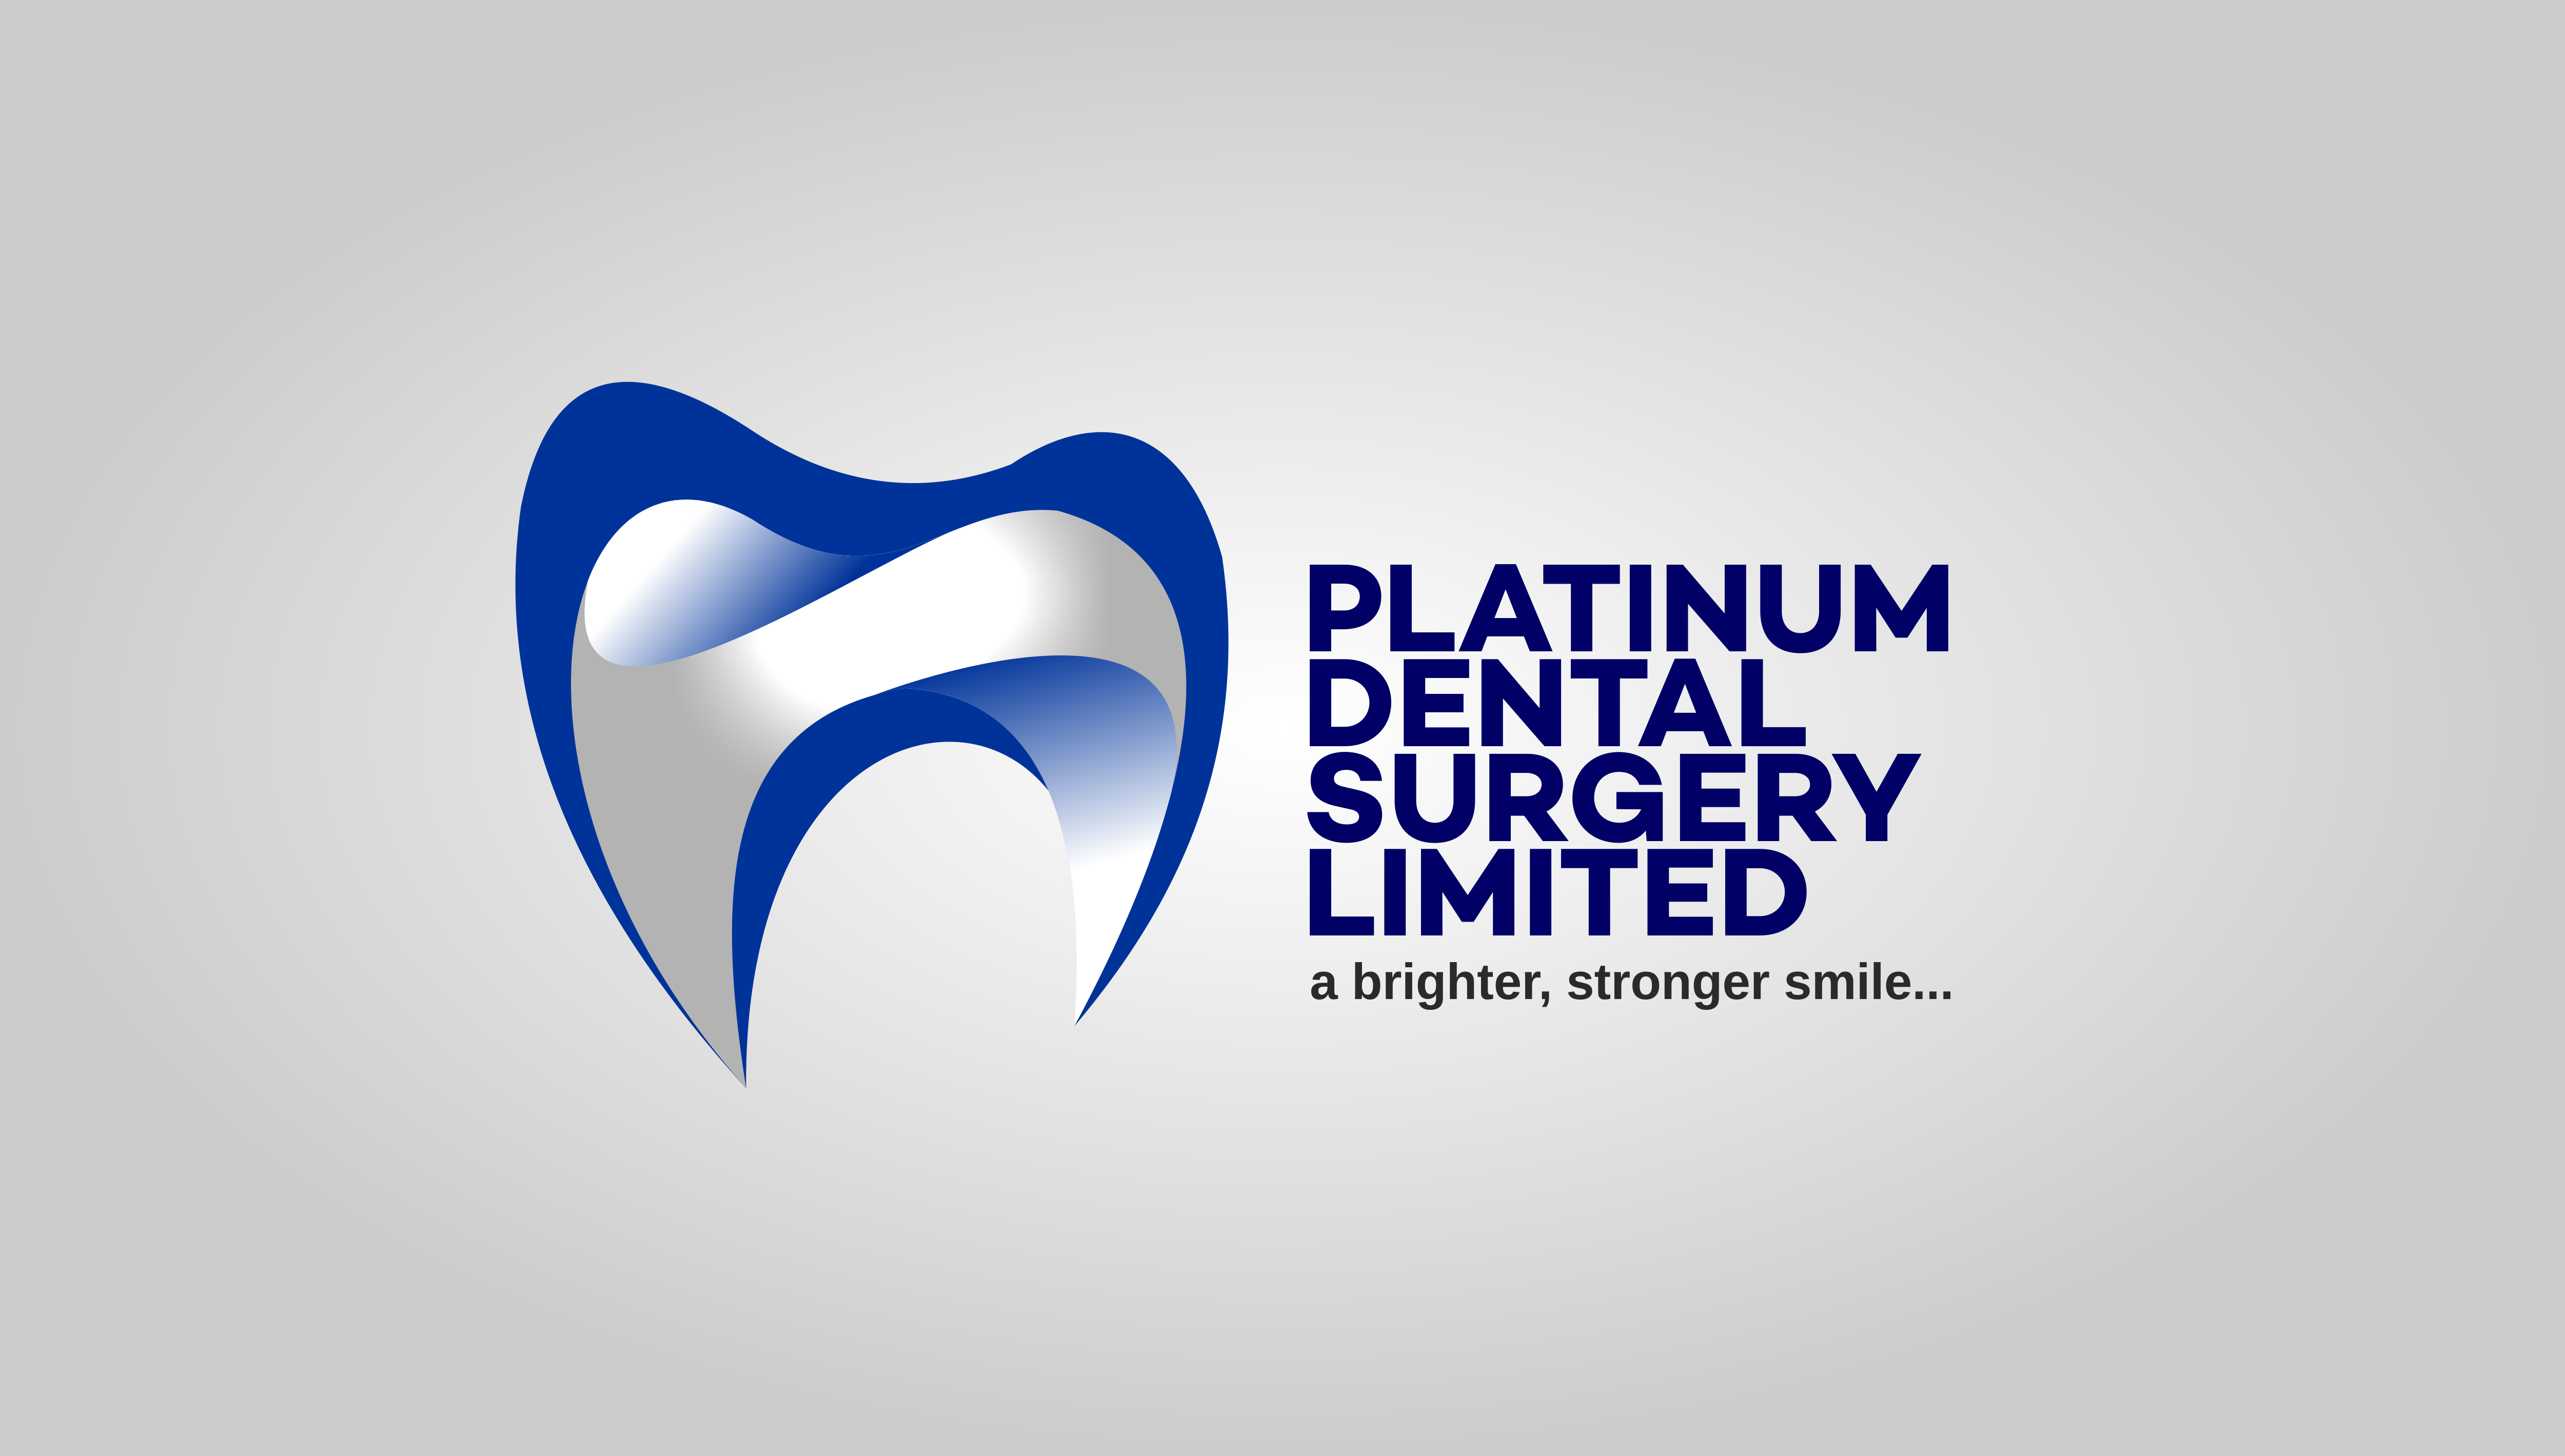 Platinum Dental Surgery